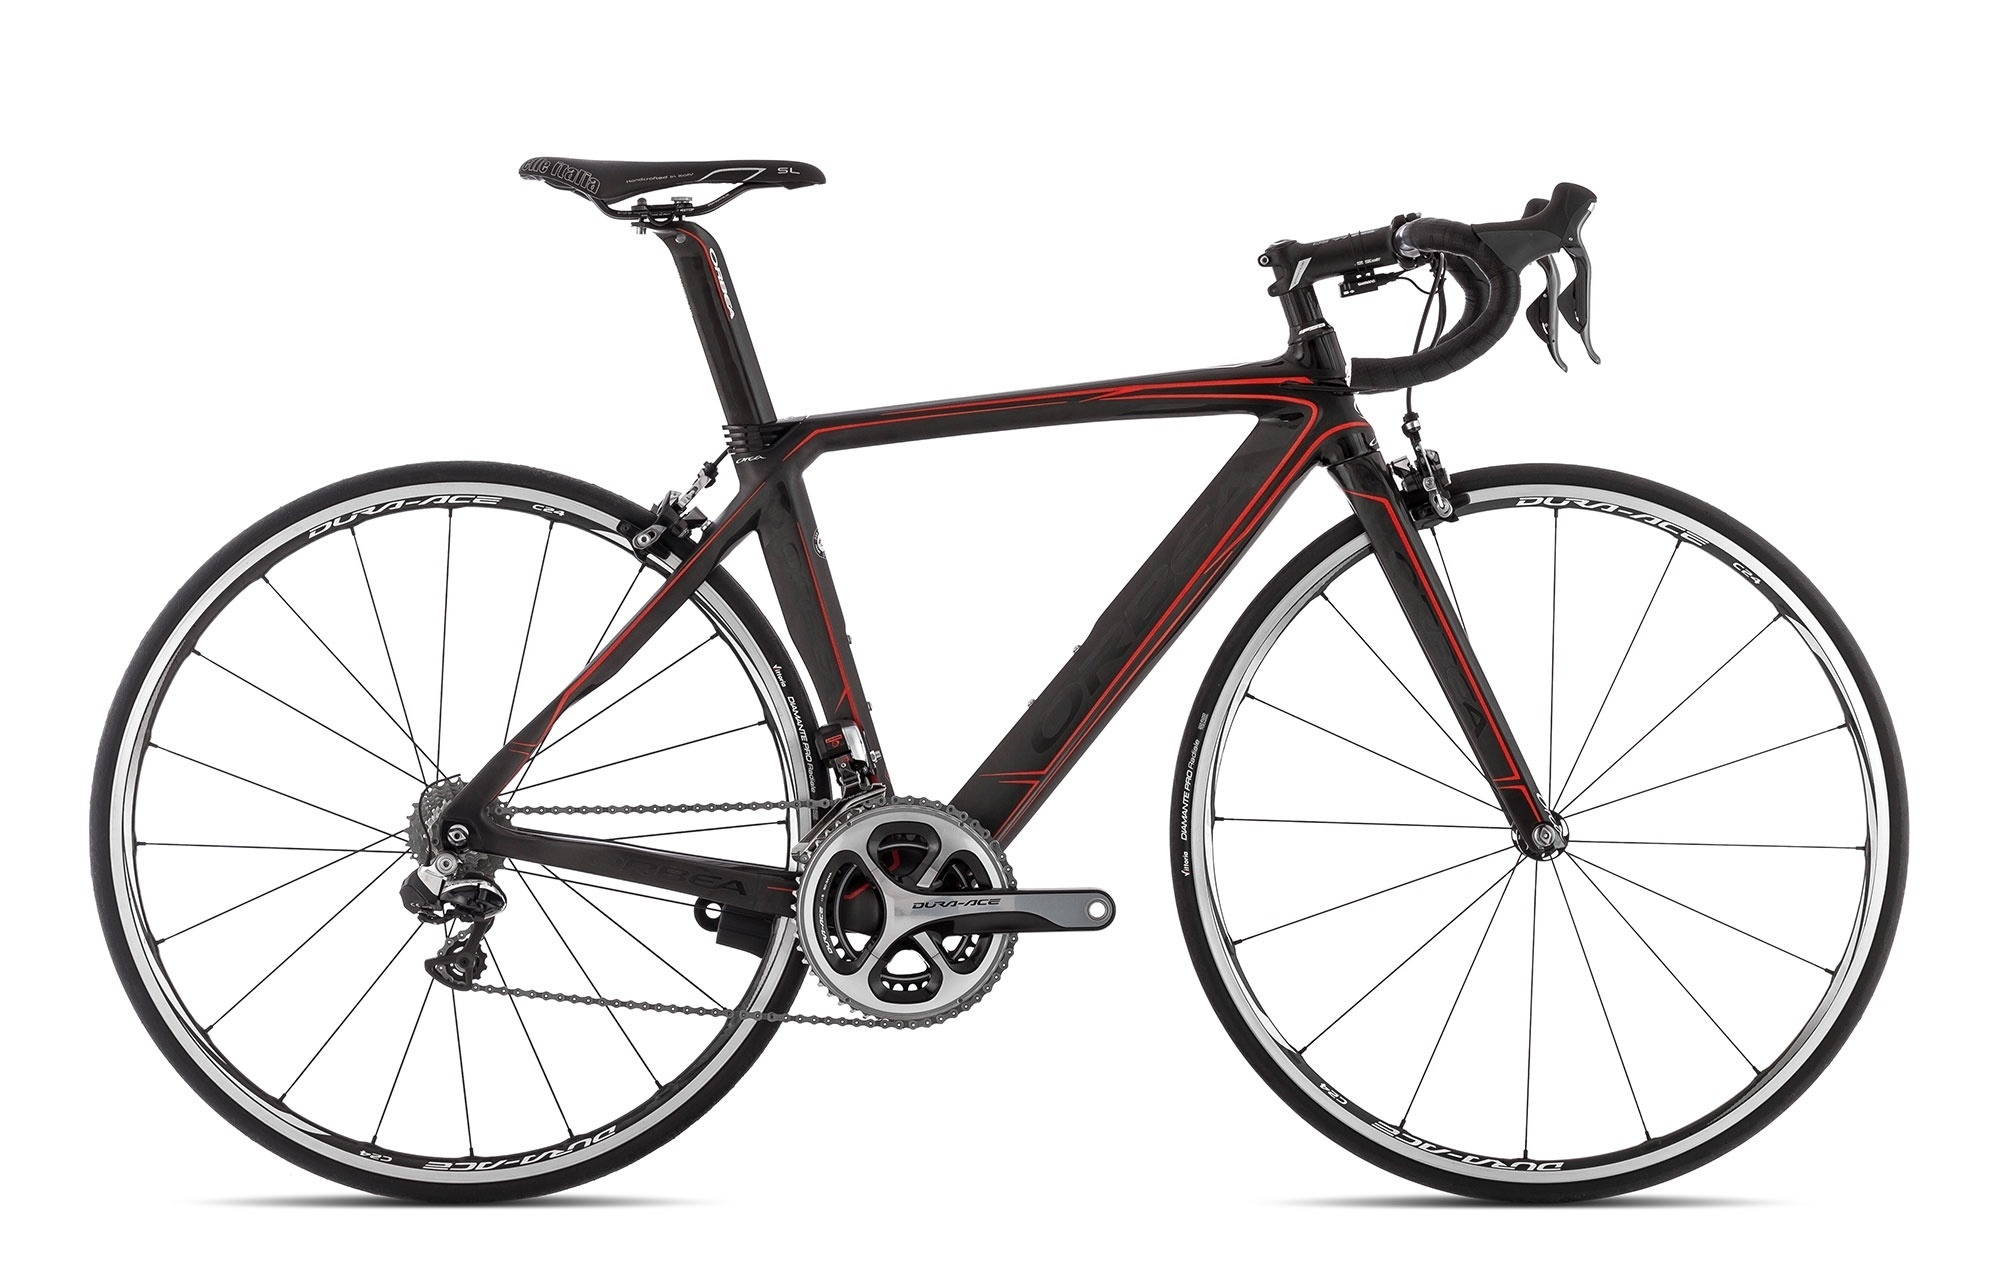 Orbea Orca M11 Super Record Eps Bike